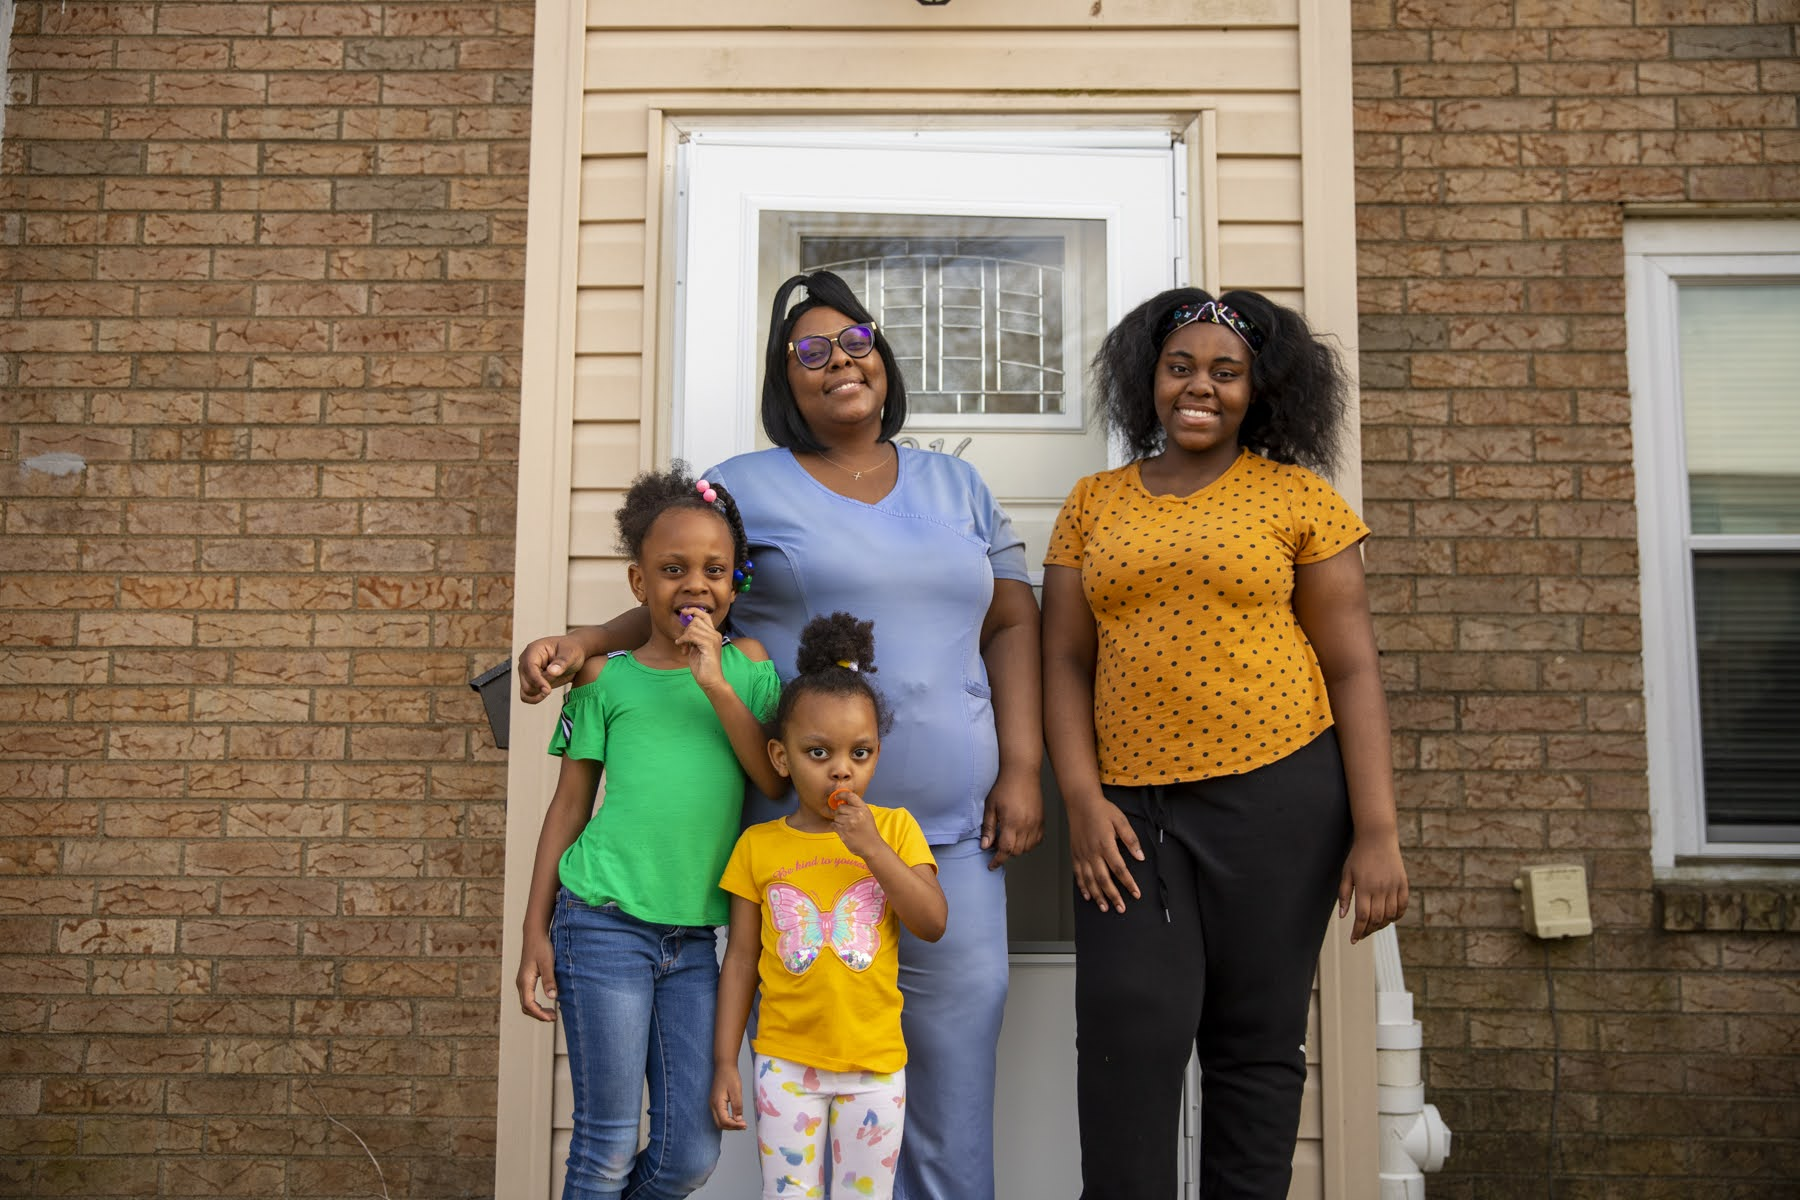 Jasmine Devine (rear) and her three daughters (from left to right) Nylah (6), Erionna (3) and Jah'Niya (13) stand in front of the townhouse they now rent in East Liberty's Enright Court. (Photo by Jay Manning/PublicSource)